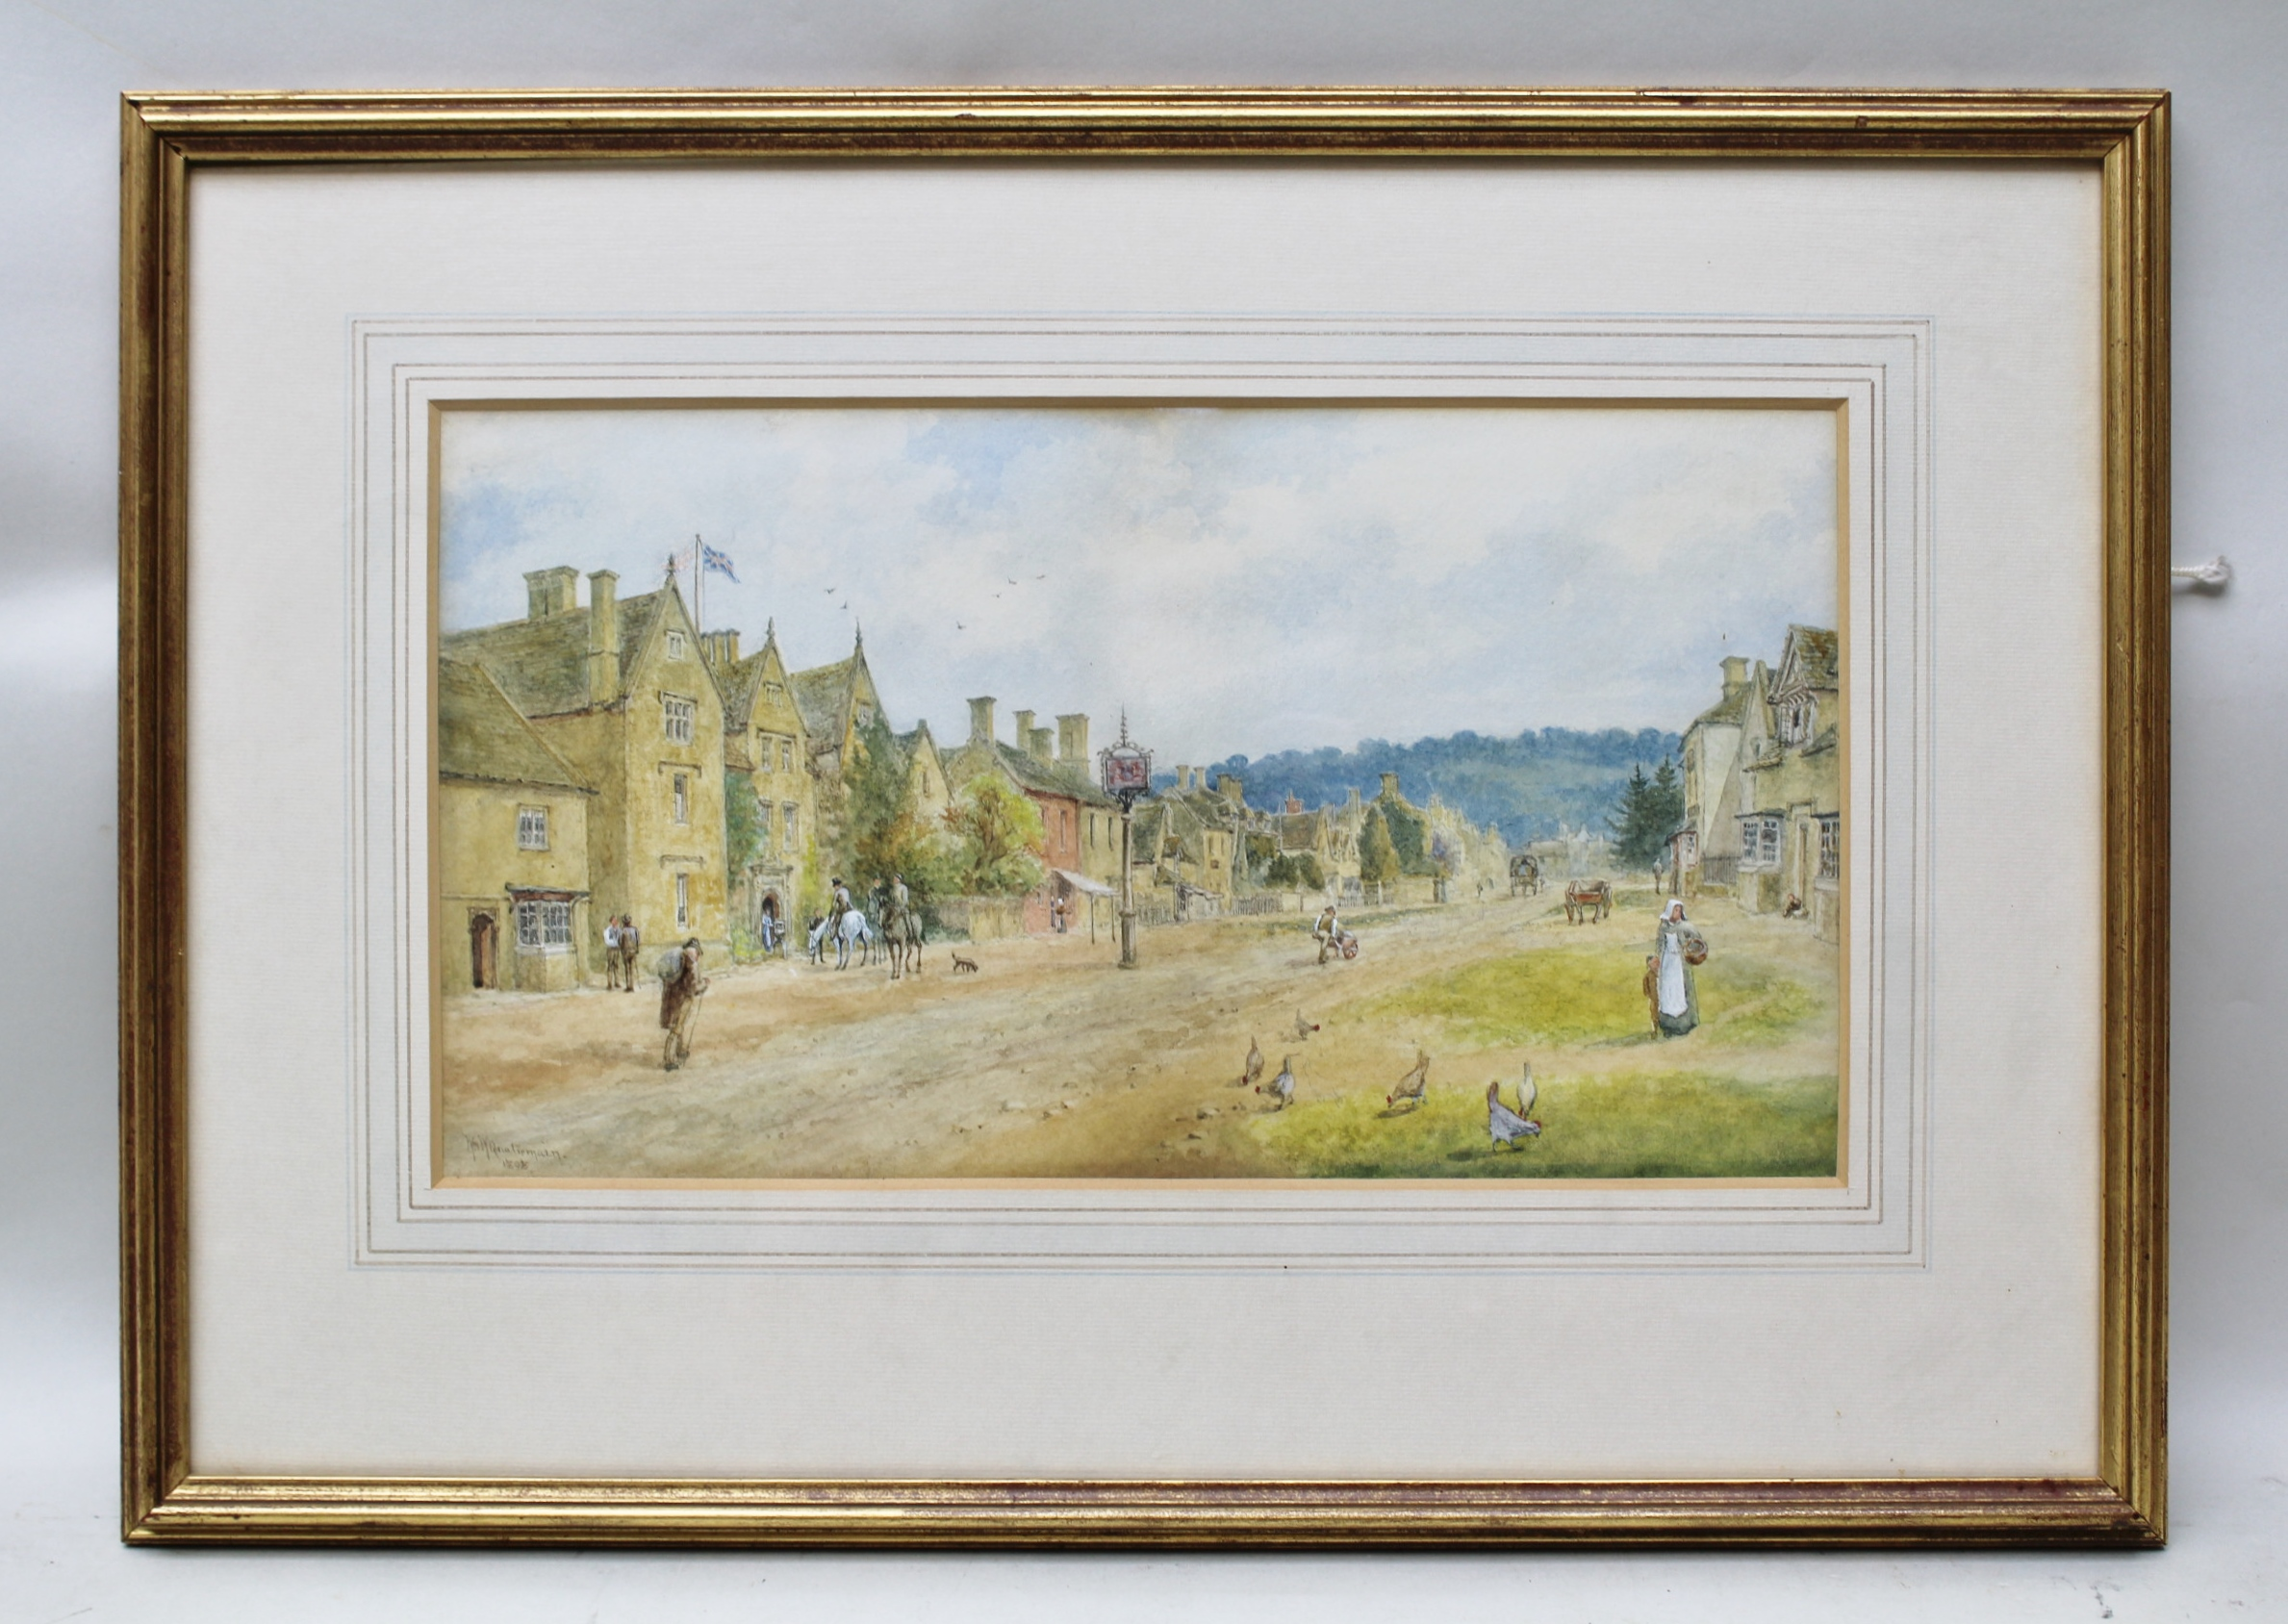 WILLIAM WELLS QUATREMAIN (1857-1930) The Lygon Arms Hotel, High Street, Broadway, an extensive view with figures, chickens, horses and carts, a Watercolour, signed and dated 1898, 22cm x 39.5cm in gilt glazed frame